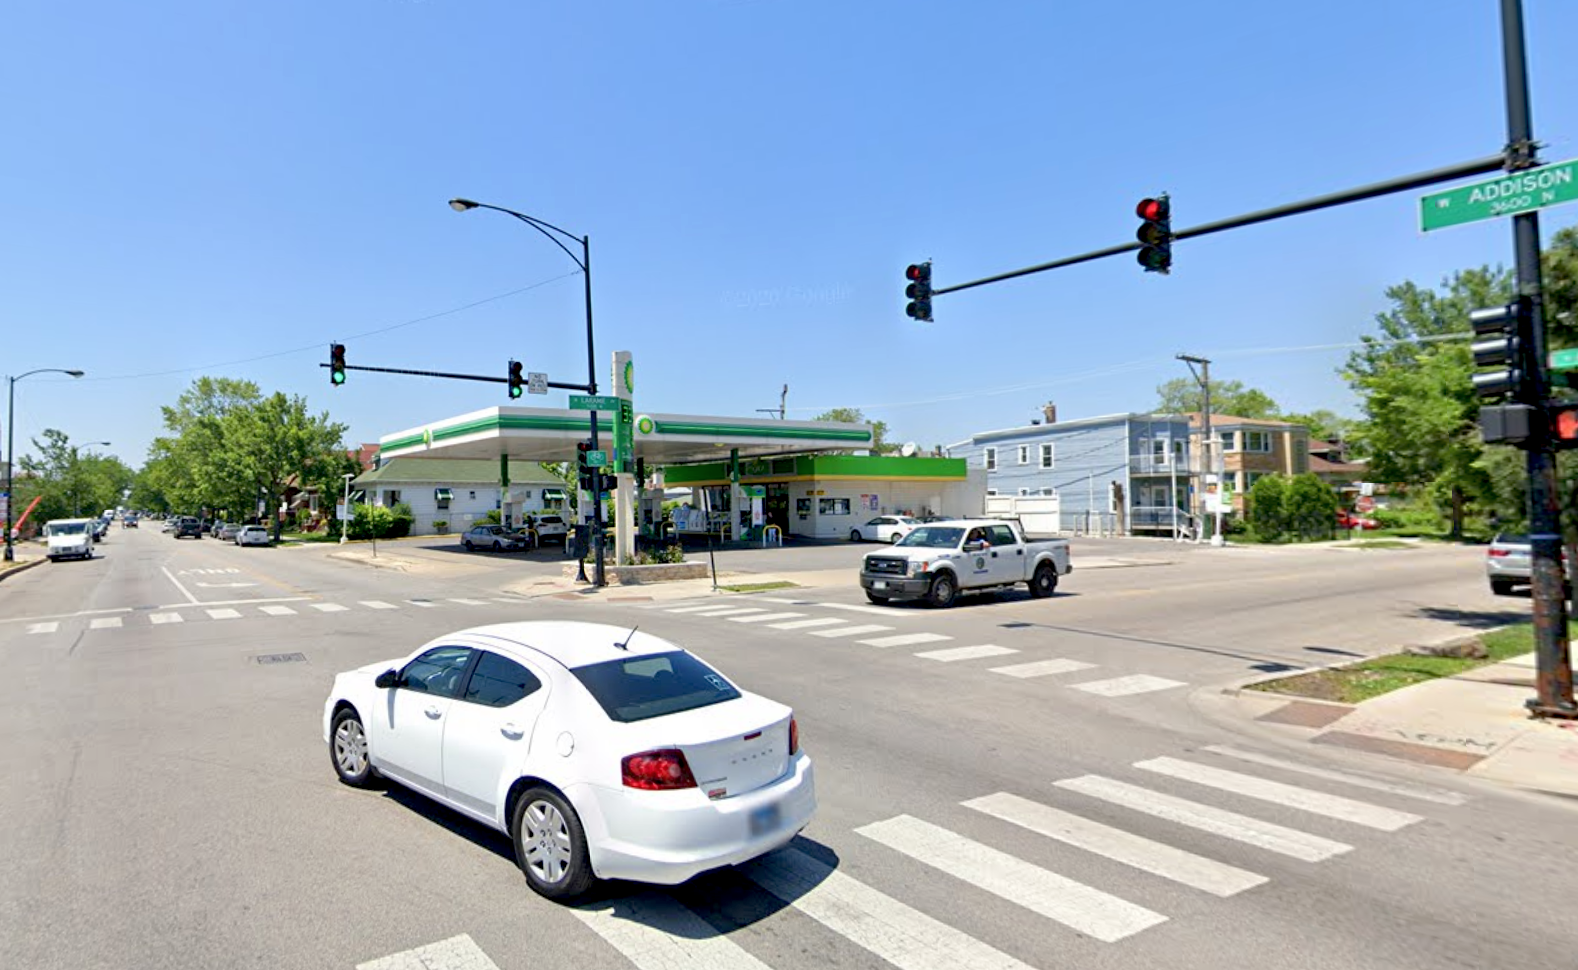 Authorities responded May 13, 2020, to a crash at Addison Street and Laramie Avenue.